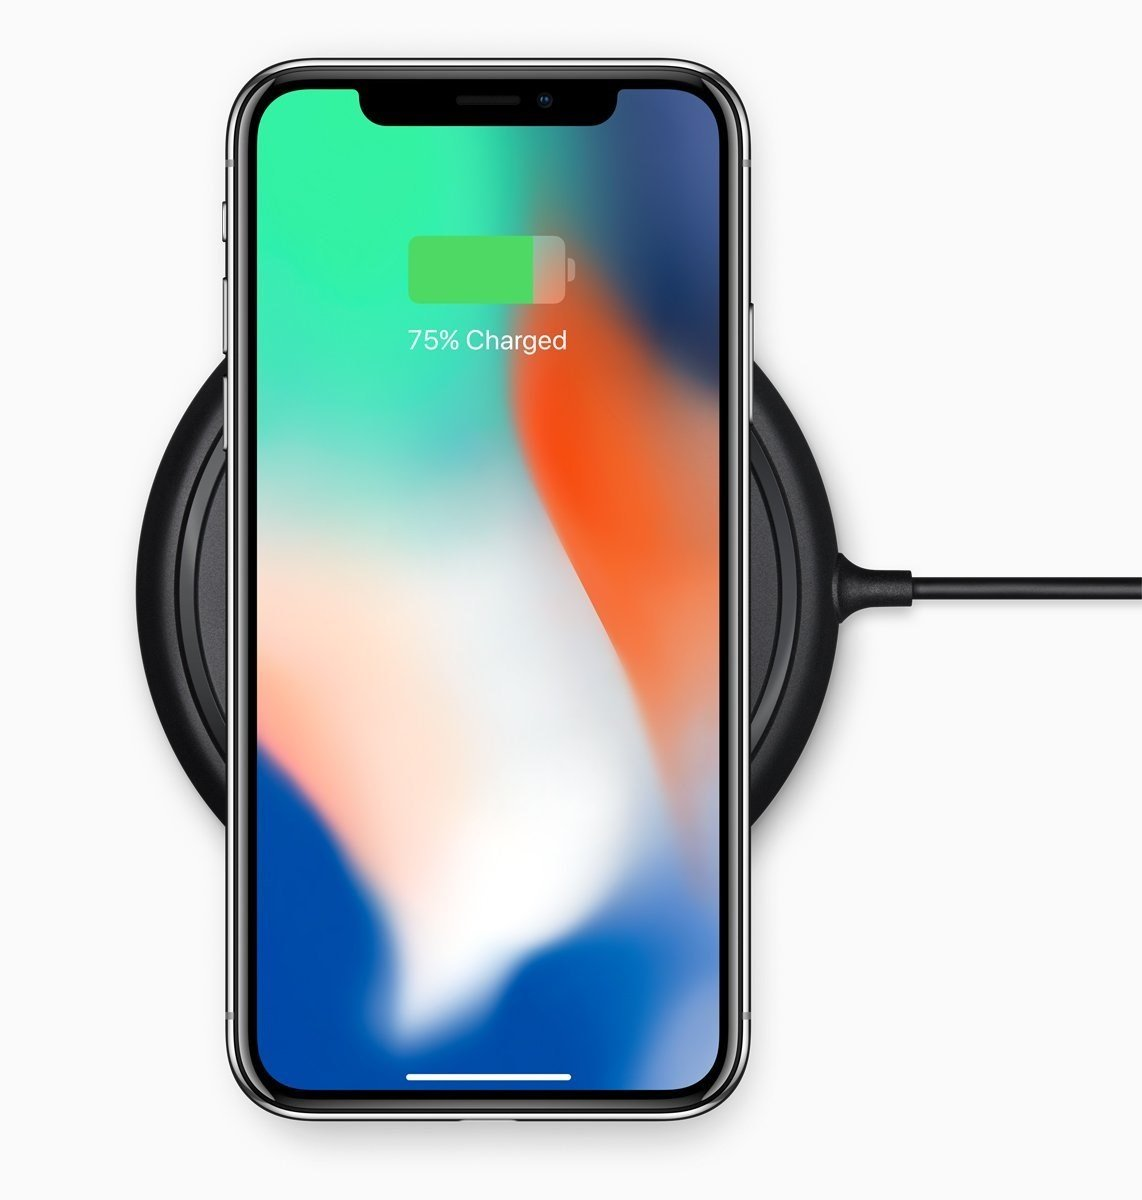 Apple revealed the new iPhone X on Tuesday, September 12, 2017 for the tenth anniversary of the original iPhone.